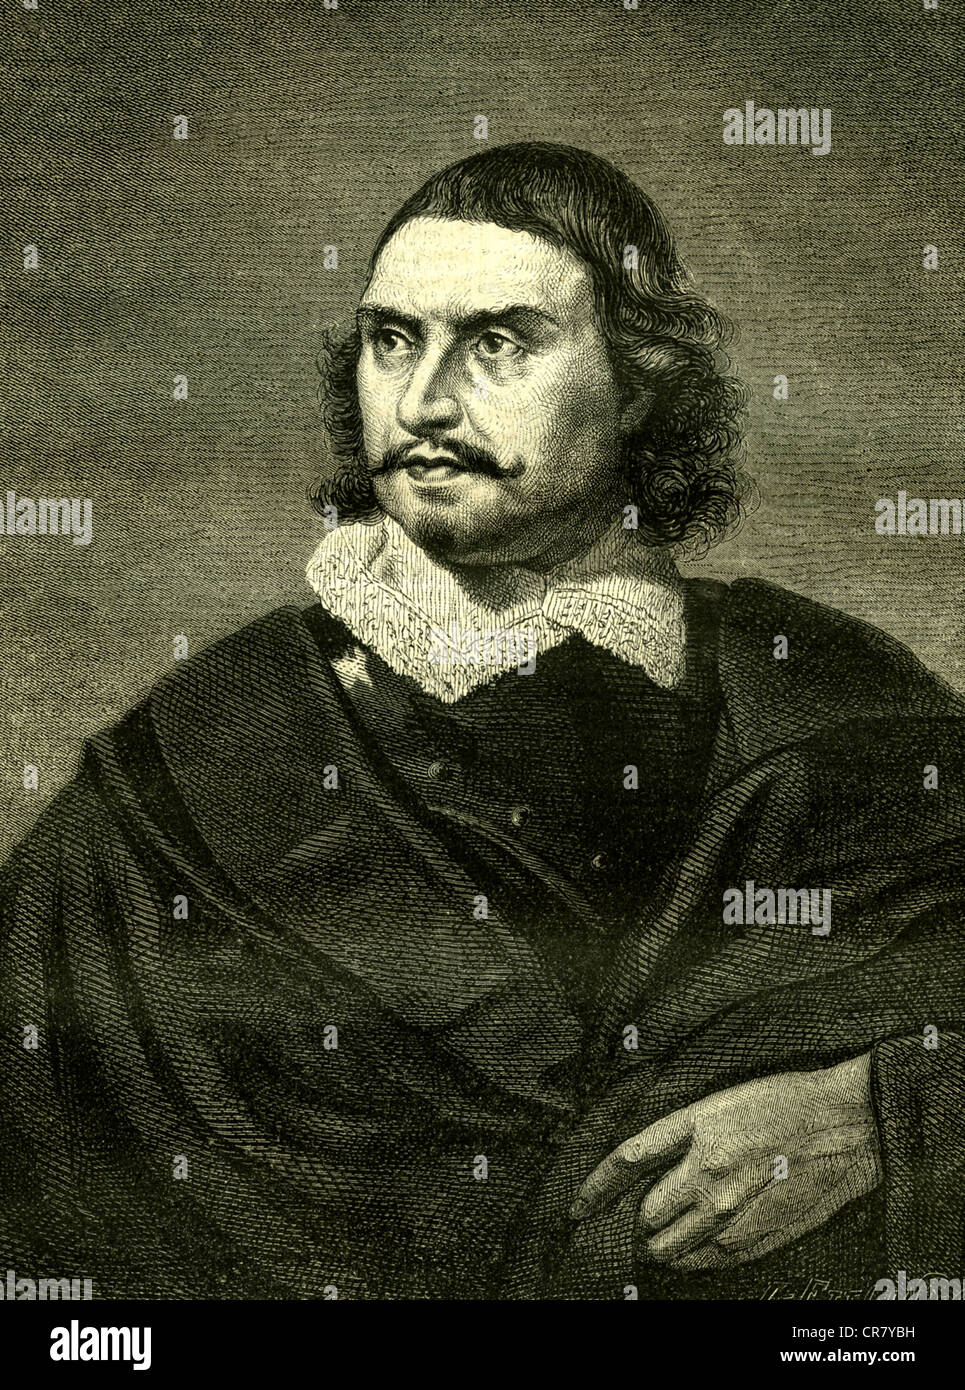 Oliver Cromwell, English statesman, 1599-1658, historical engraving from 1868 - Stock Image